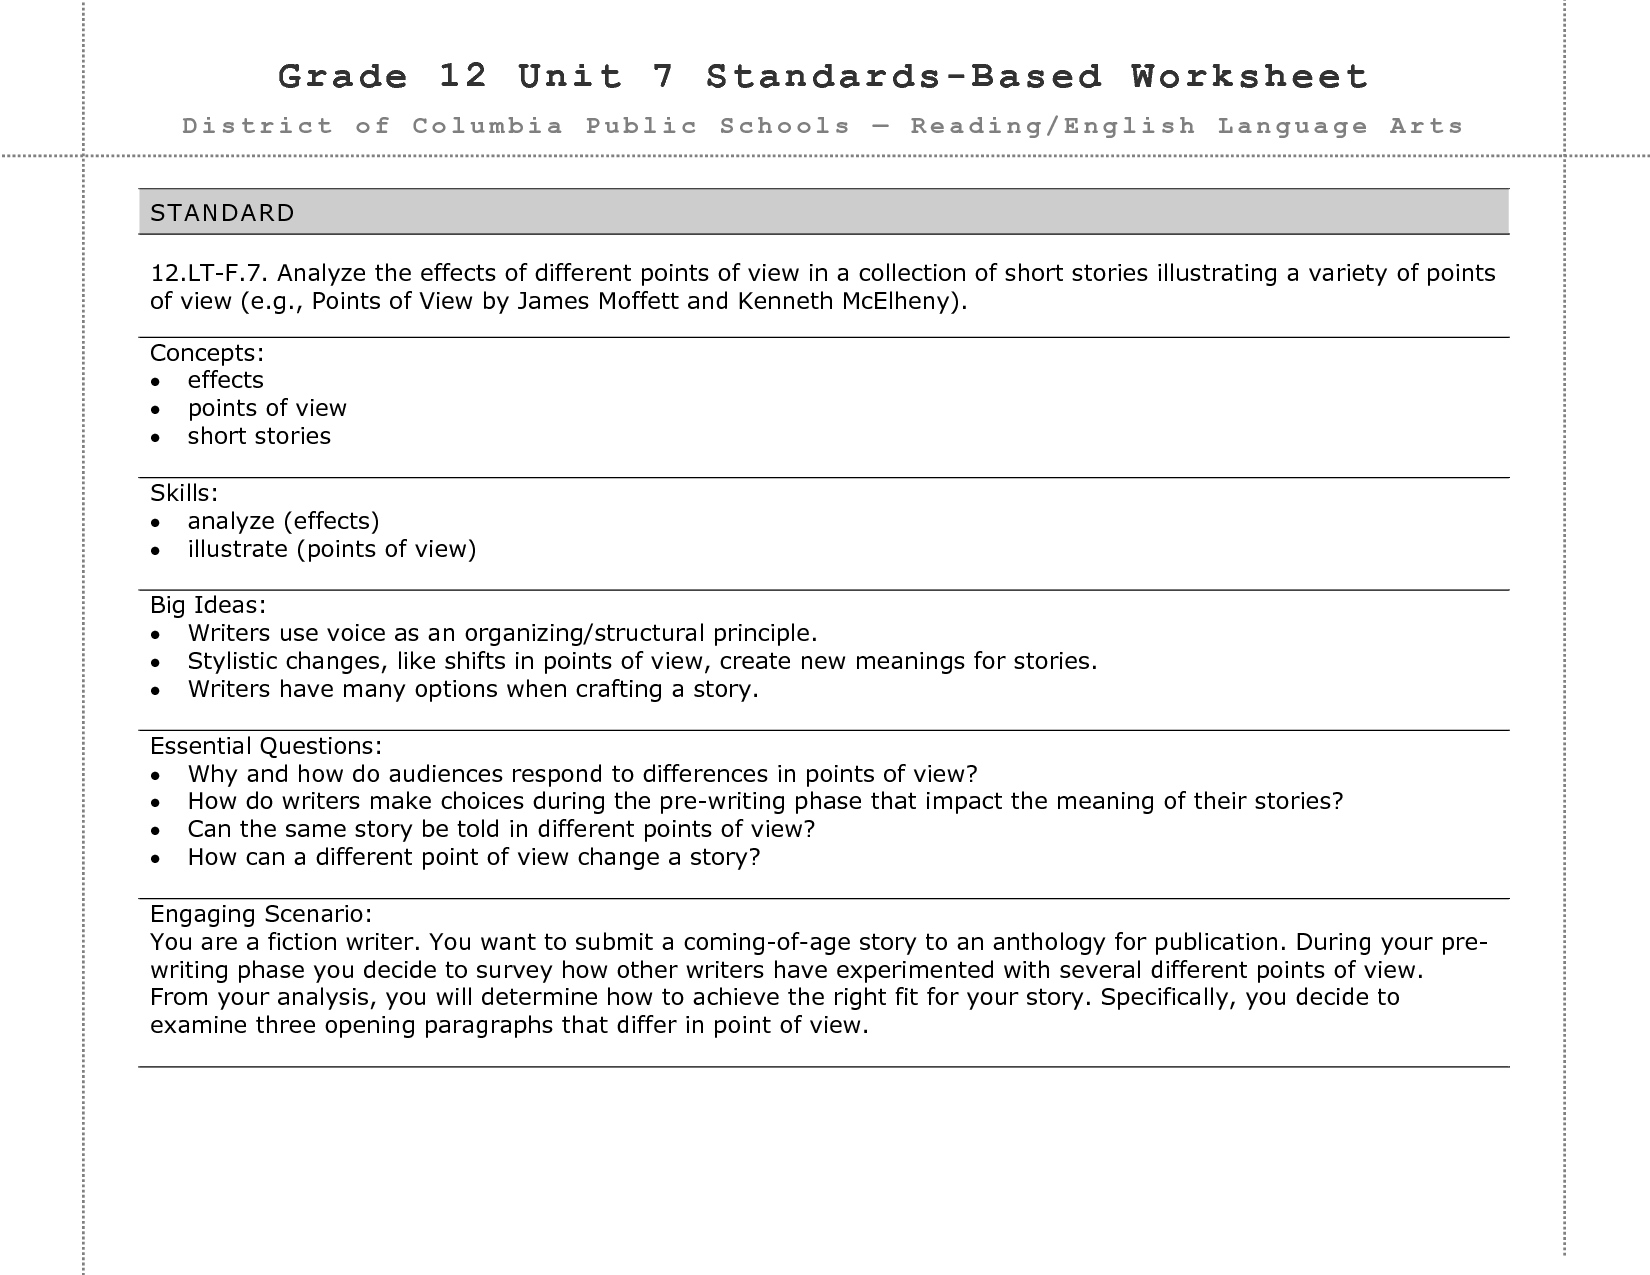 9 Best Images Of 12 Grade Worksheets